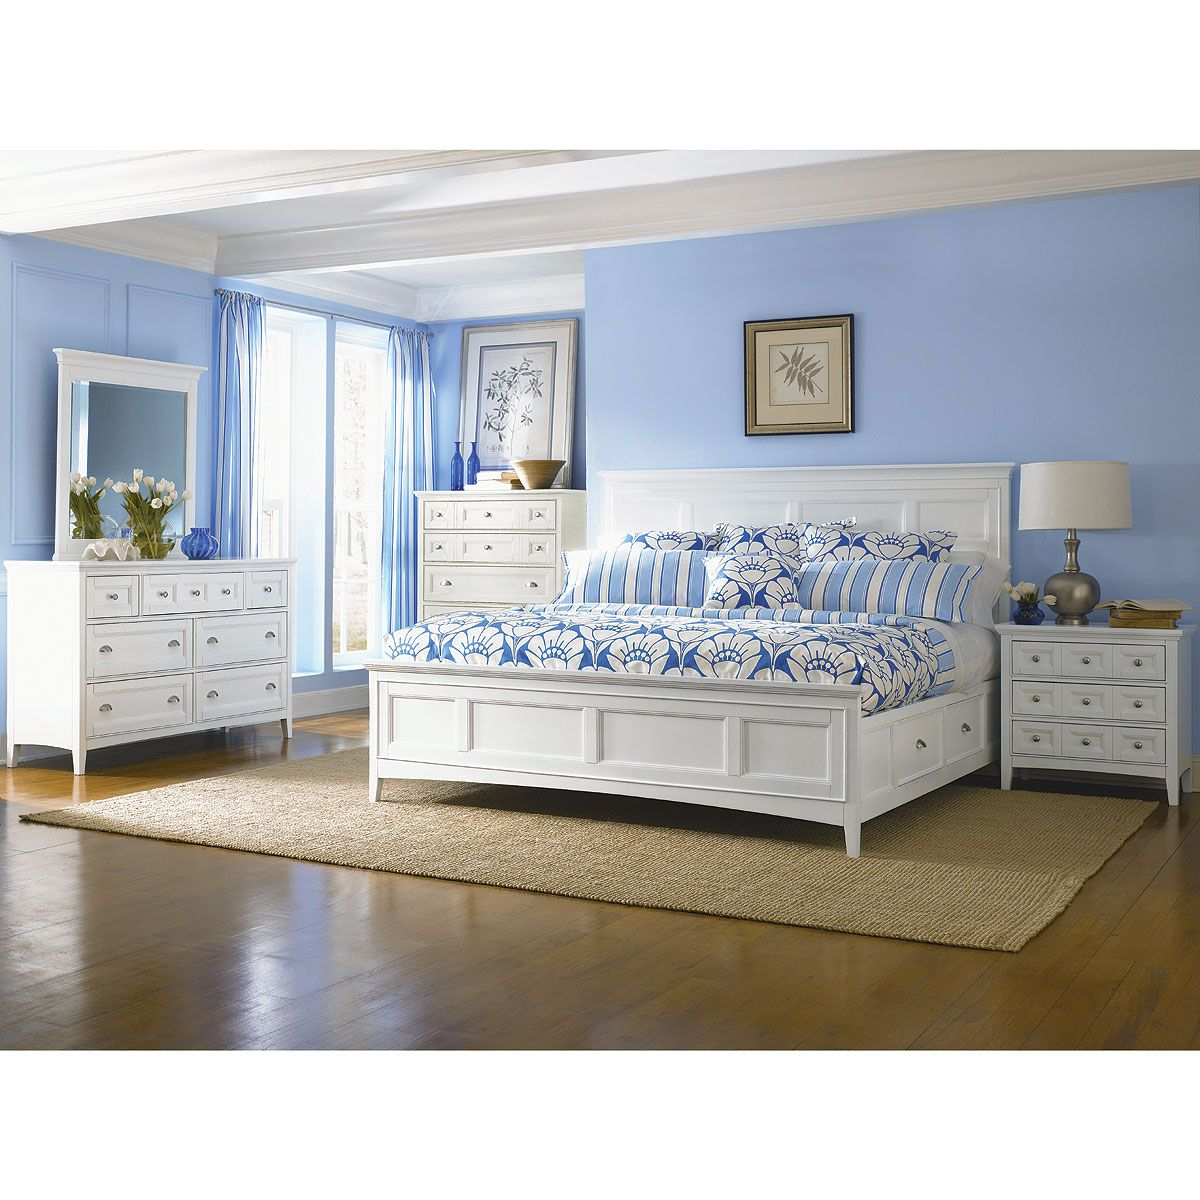 Best Classic White 4 Piece California King Bedroom Set Trentwood White Bedroom Set King Bedroom 640 x 480